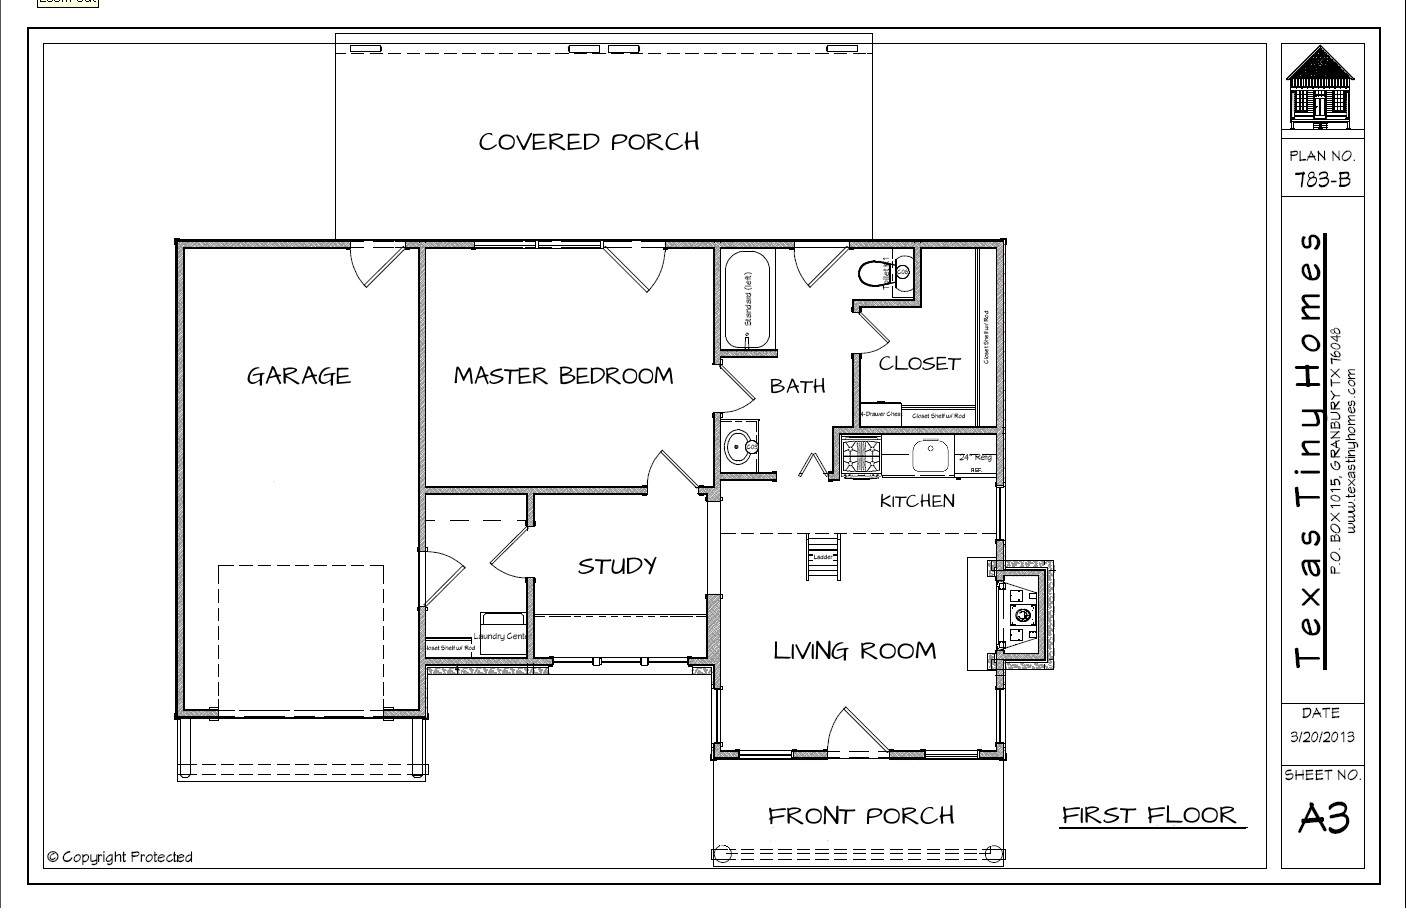 Tiny House Plans, Small House Plans, Little House Plans, Micro House Plans,